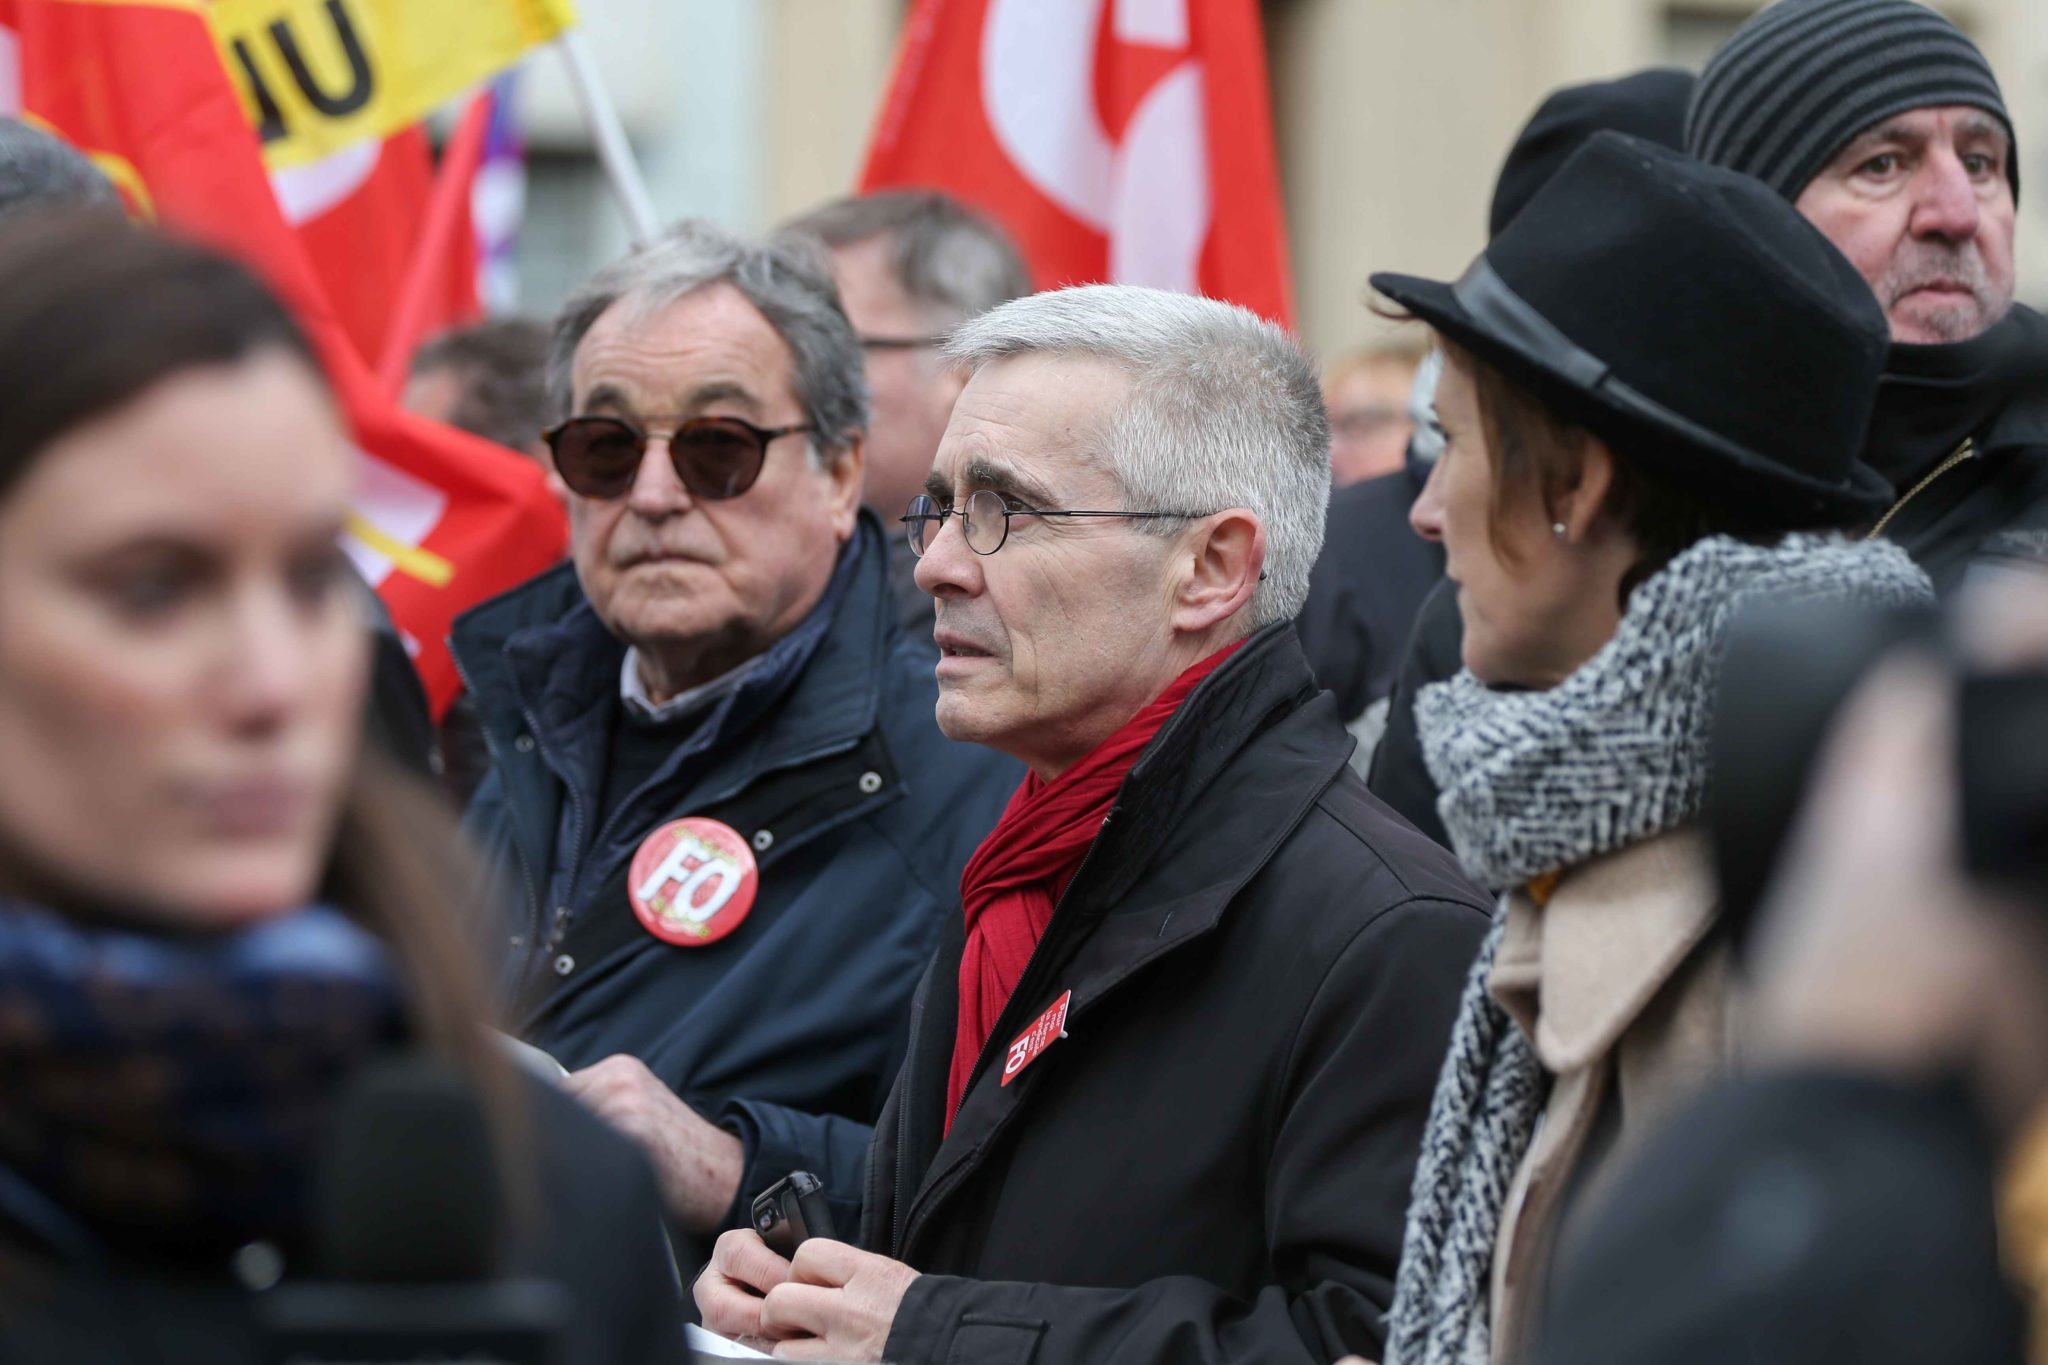 General secretary of French Union Force Ouvriere (FO) Yves Veyrier (C) takes part in a demonstration in Paris, on January 11, 2020, as part of a nationwide multi-sector strike against the French government's pensions overhaul. The country has been hit by 3